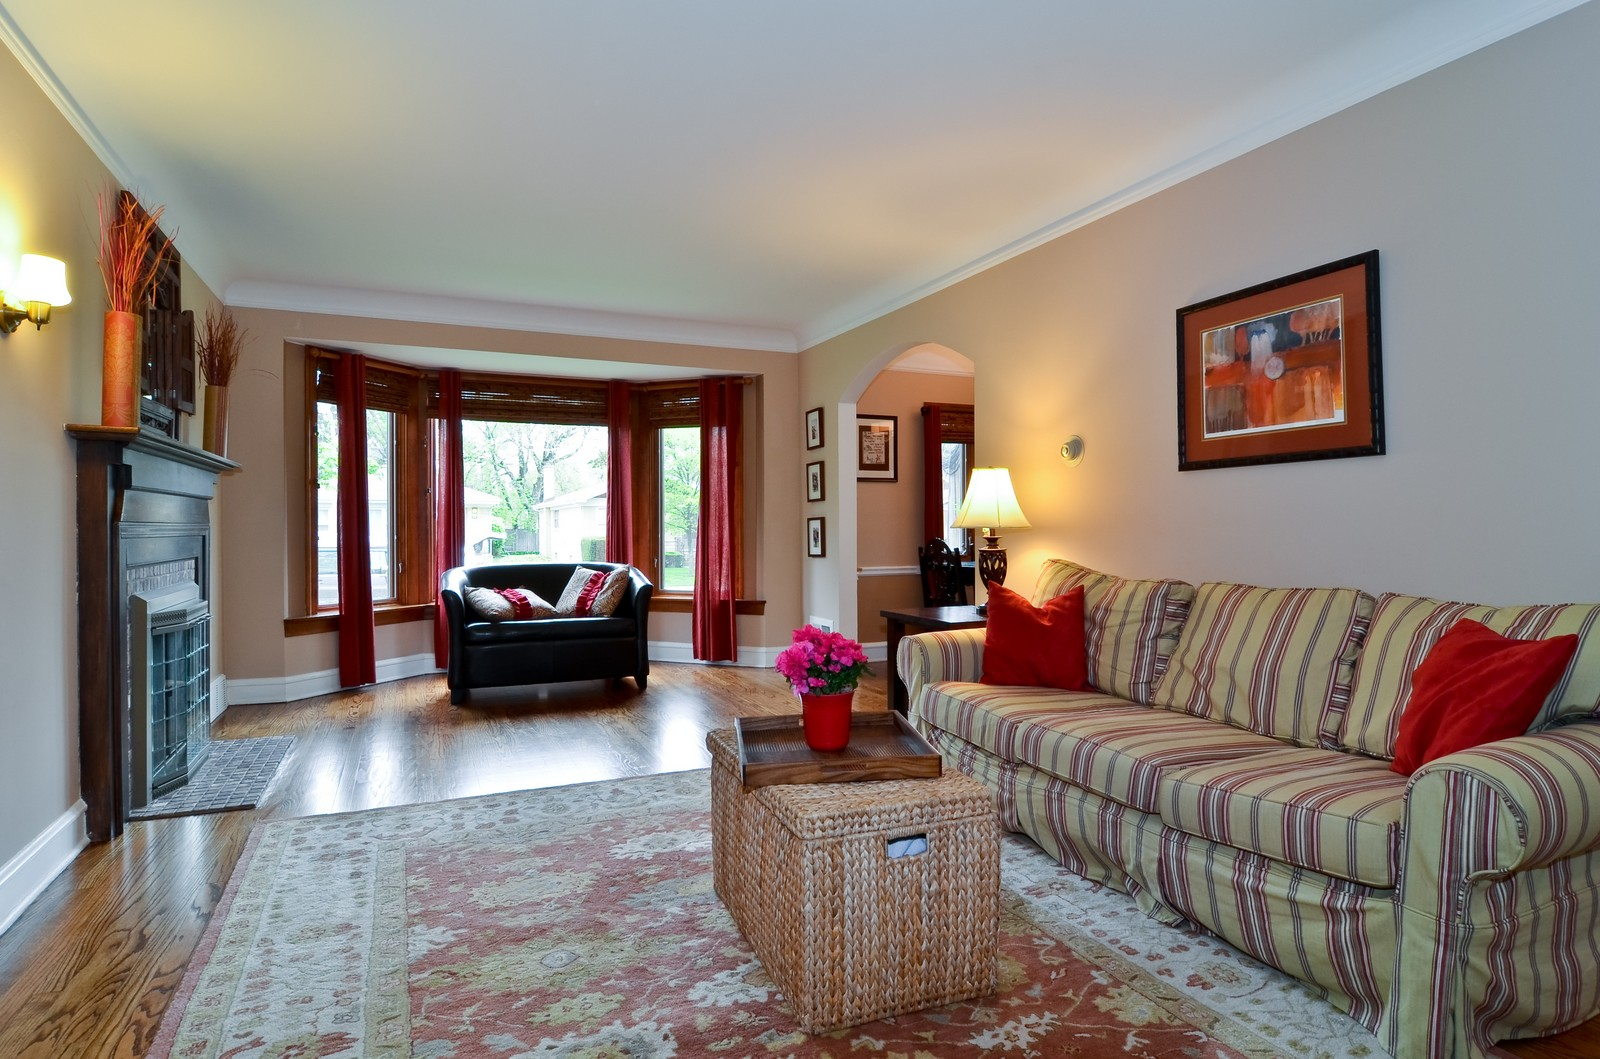 Real Estate Photography - 6712 N Dowagic, Chicago, IL, 60646 - Living Room